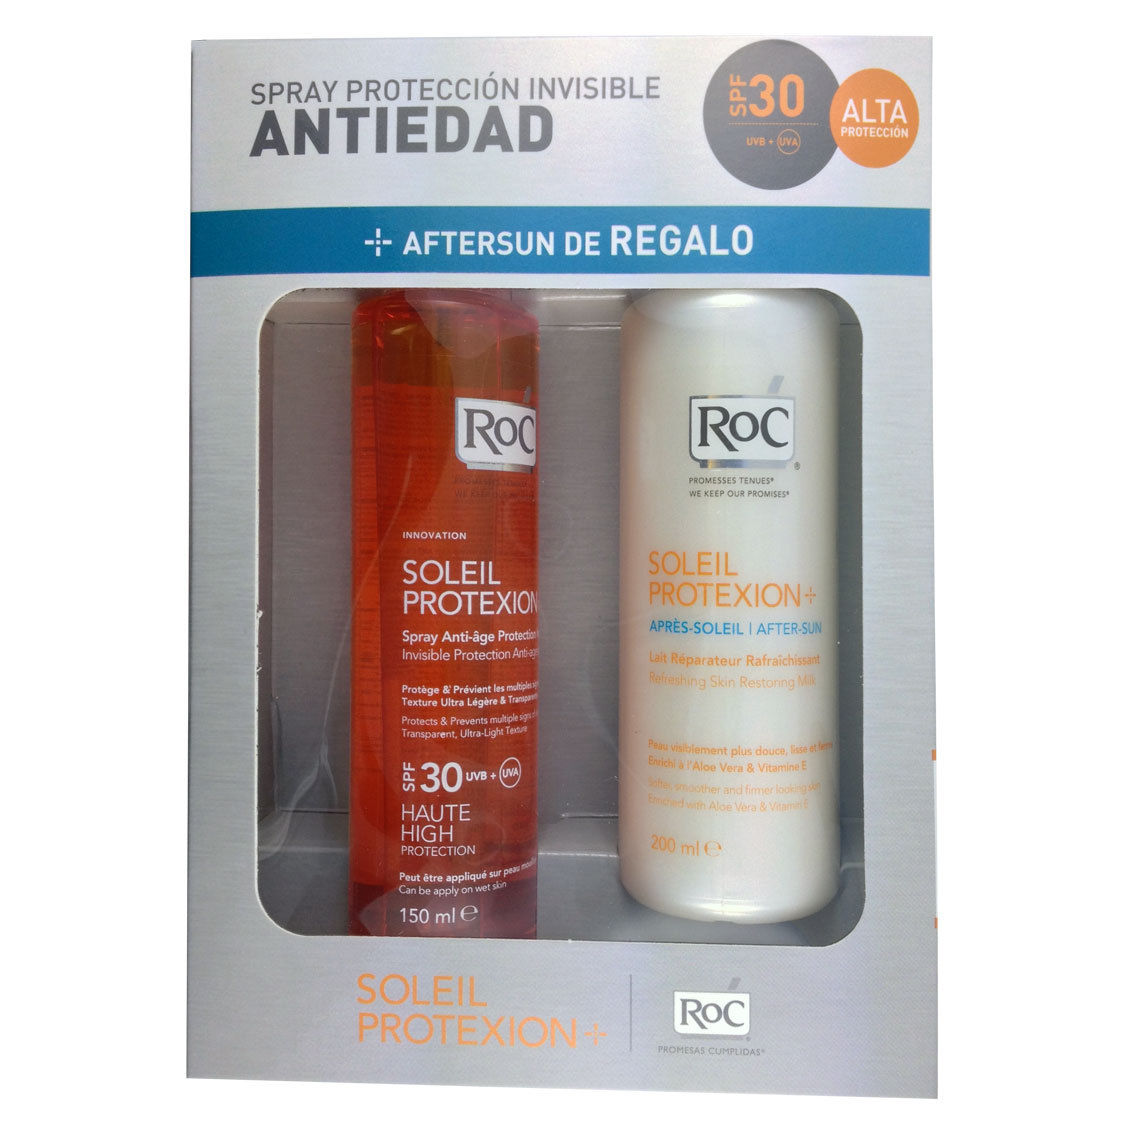 ROC SOLEIL PROTEXION + SPRAY PROTECCION INVISIBLE ANTIEDAD 150 ML + AFTERSUN LECHE REPARADORA 200 ML